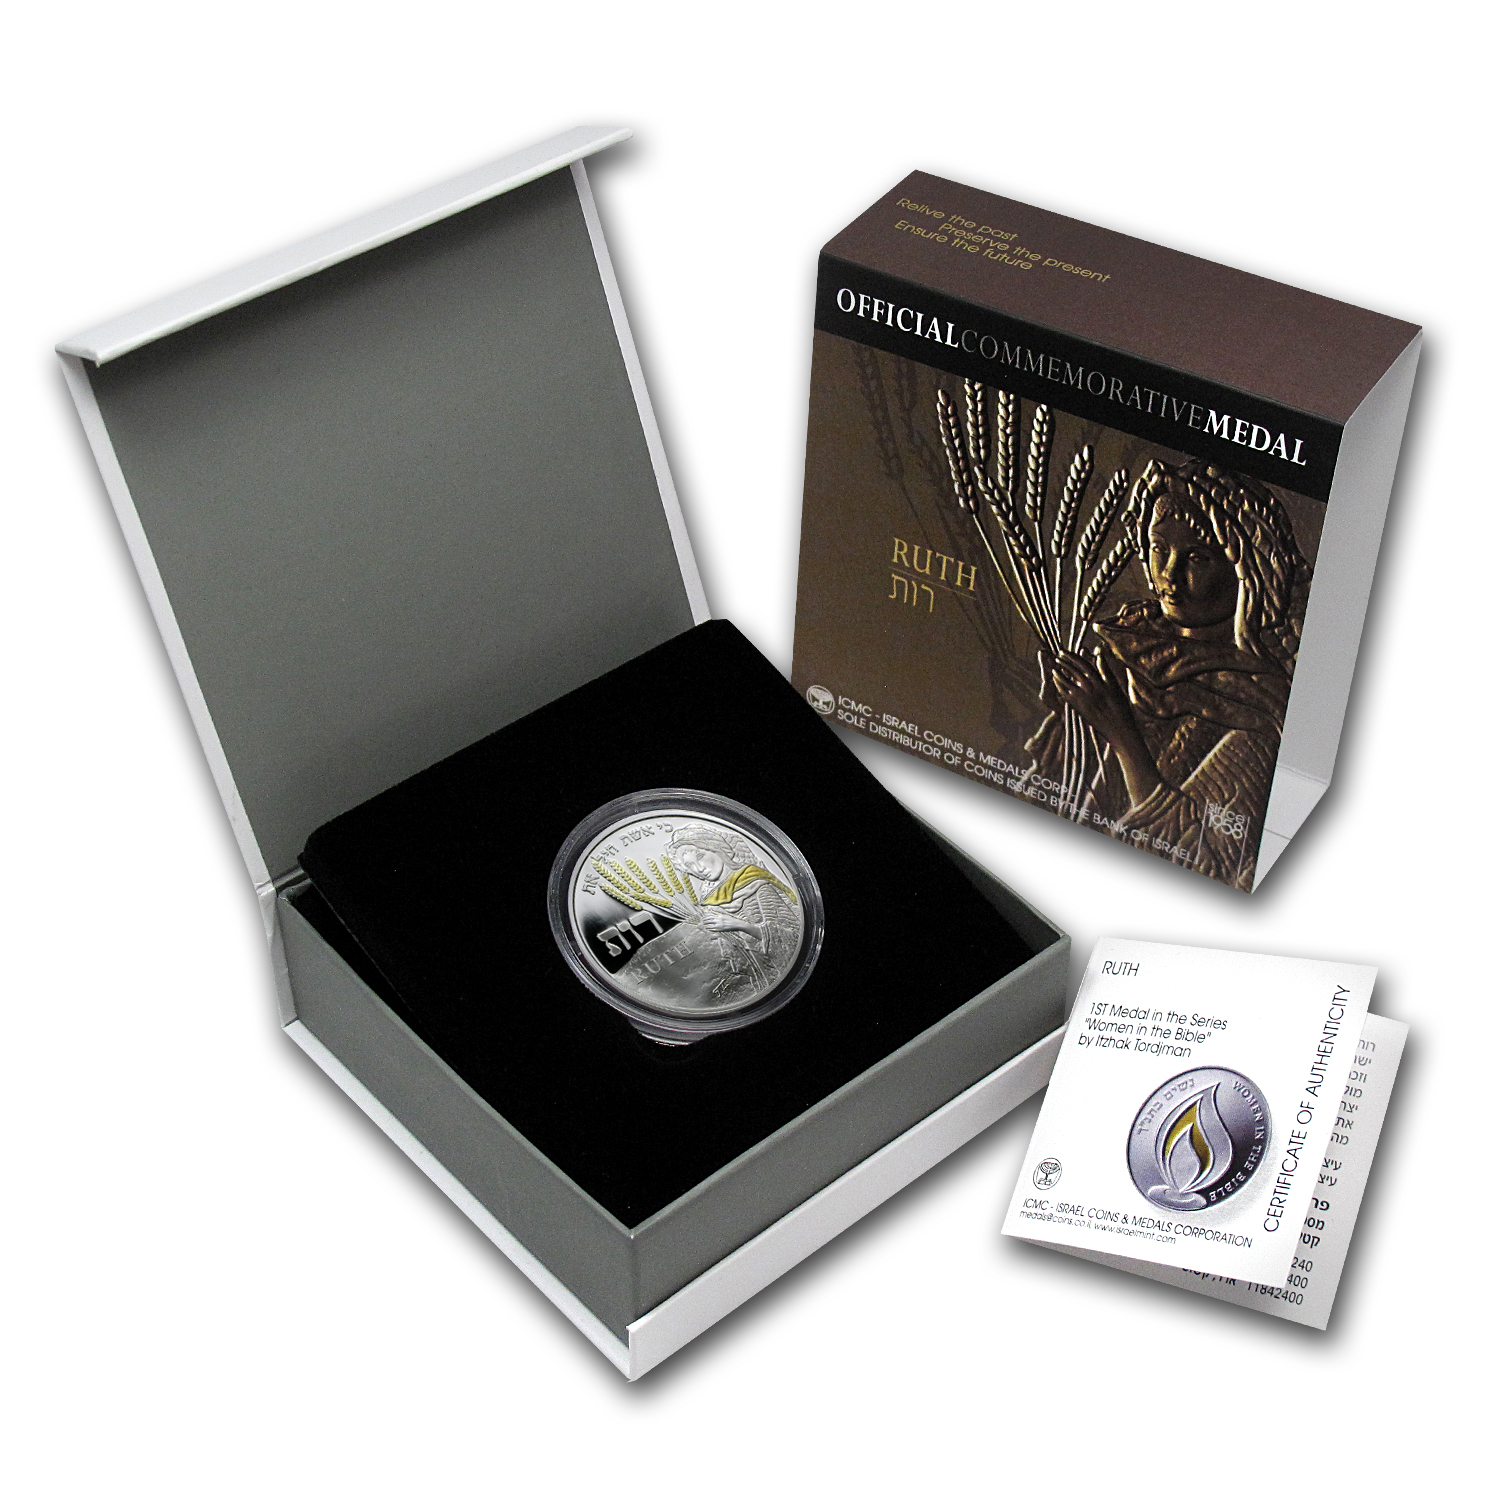 2009 Israel Ruth Silver Medal Proof (ASW .643)